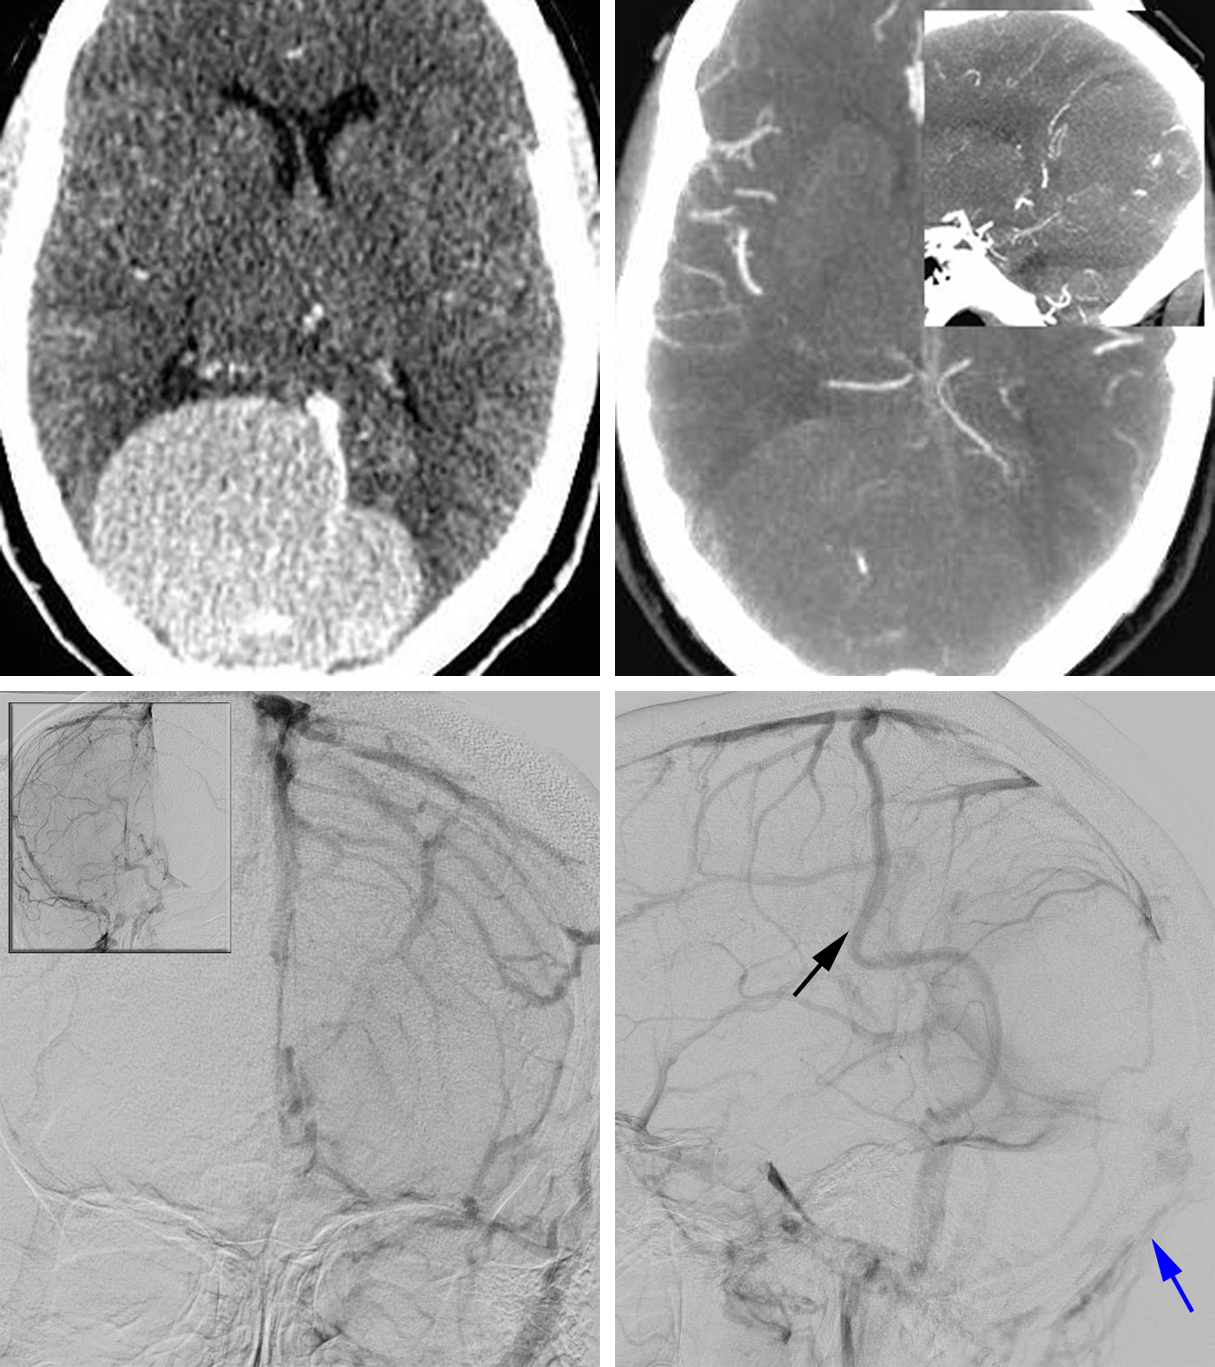 Figure 1: A large peritorcular meningioma is noted. This patient could not undergo MR imaging because of the presence of a ferromagnetic foreign body. CT angiogram demonstrated occlusion of posterior sagittal and transverse sinuses as well as the torcula (top row of images). Anteroposterior and lateral angiogram images (bottom row of images) revealed tumor arterial supply from the petrosquamosal divisions of the middle meningeal arteries bilaterally. There was complete occlusion of the superior sagittal sinus at the level of the parietal lobe with venous outflow from the superior sagittal sinus into bilateral dural and scalp veins as well as into the parietal cortical veins. There was some patency of the straight sinus into the torcula which drained via a right paramedian emissary vein. There was prominence of the precentral cerebellar and supravermian veins, raising the possibility of retrograde flow from the straight sinus and vein of Galen into the supravermian veins. Note the hypertrophied osseous collateral venous channels within the posterior fossa (blue arrow); these were protected during the craniotomy. The vein of Trolard was also very prominent (black arrow).